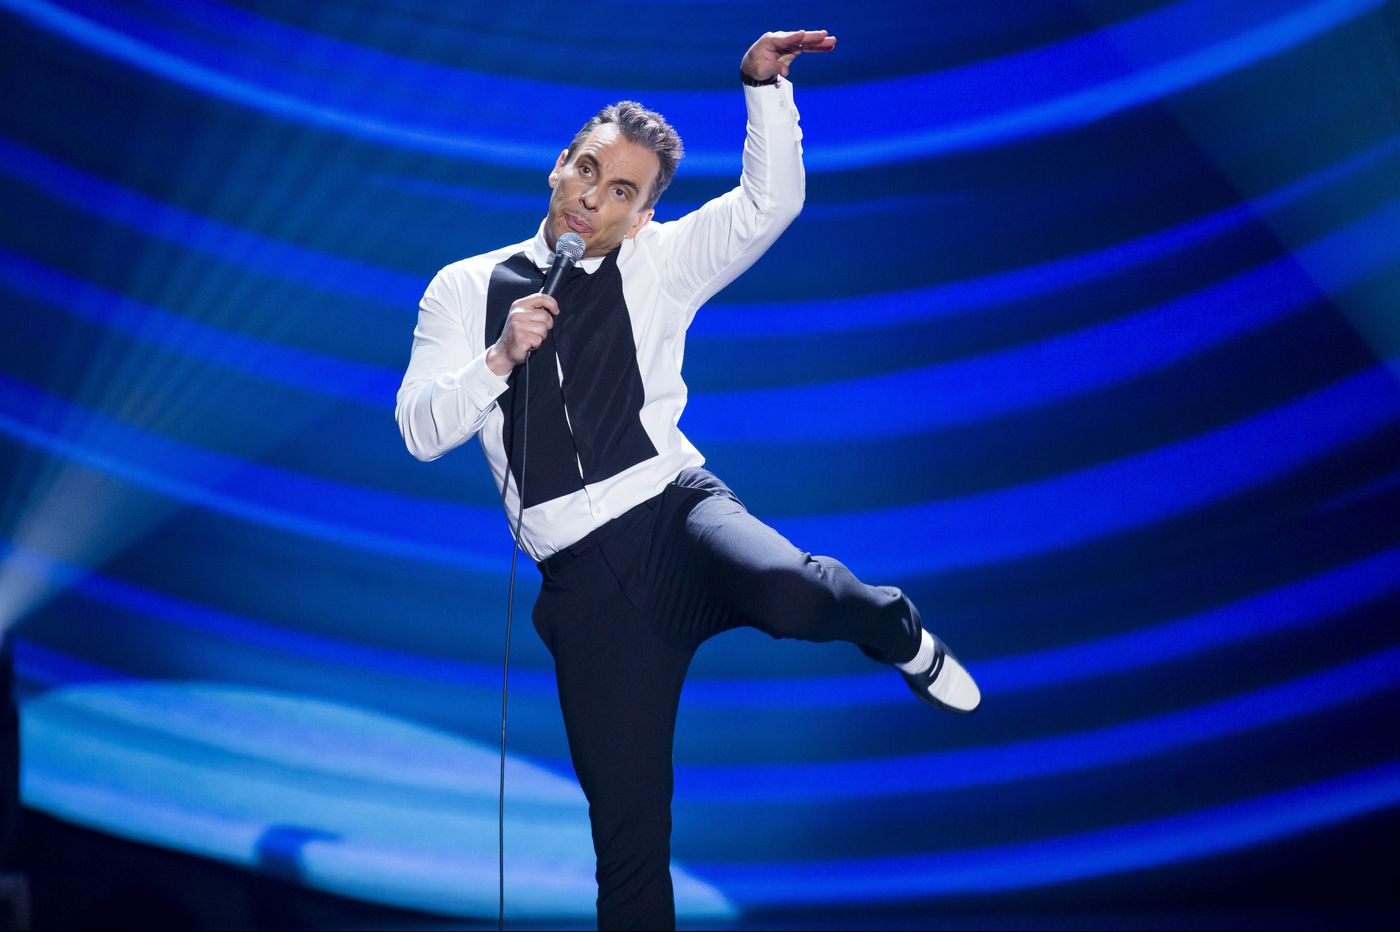 Comedian Sebastian Maniscalco is about to perform his